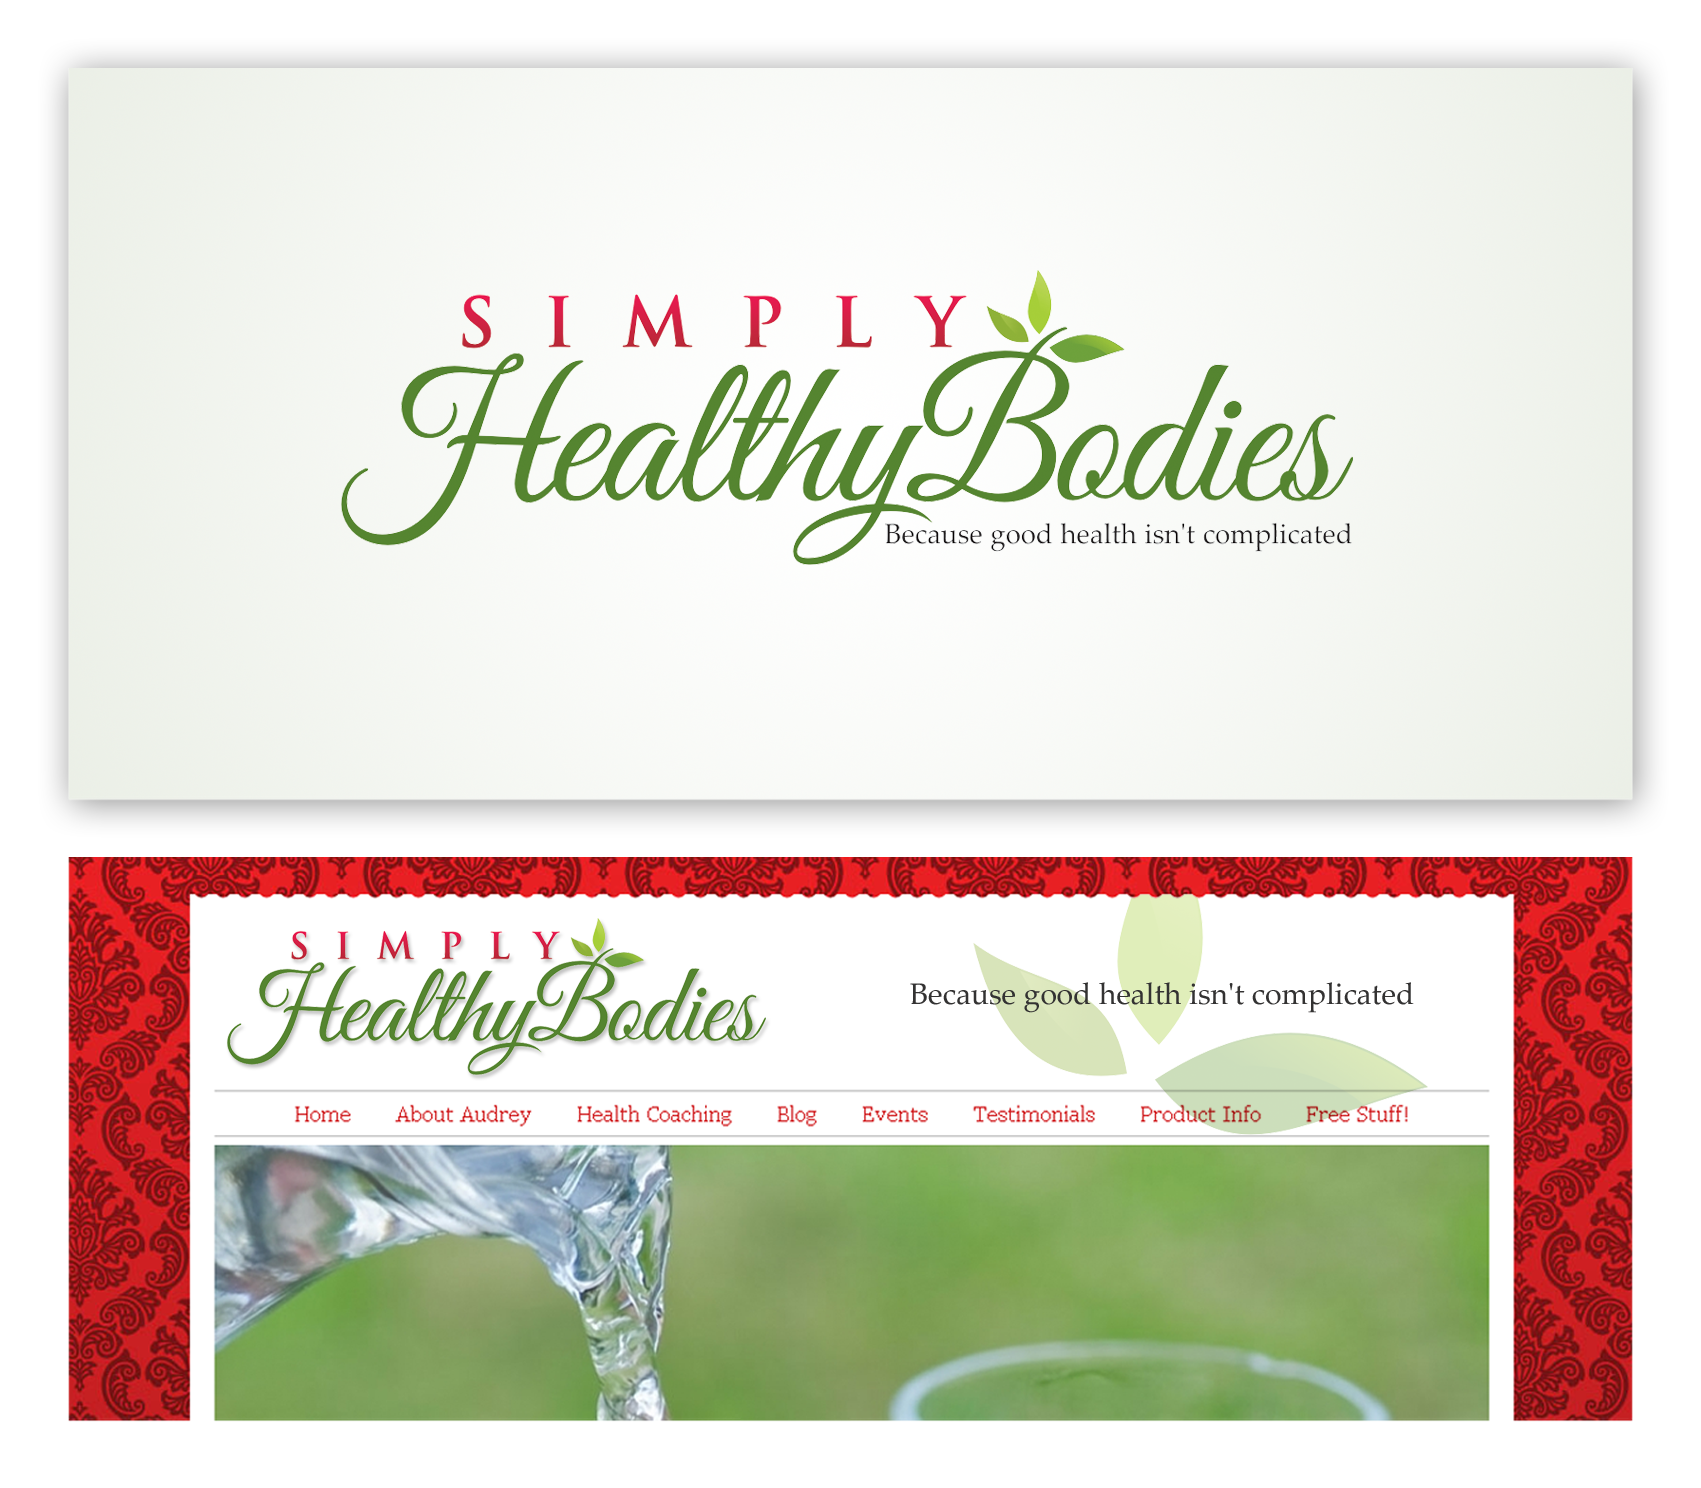 New logo wanted for Simply Healthy Bodies